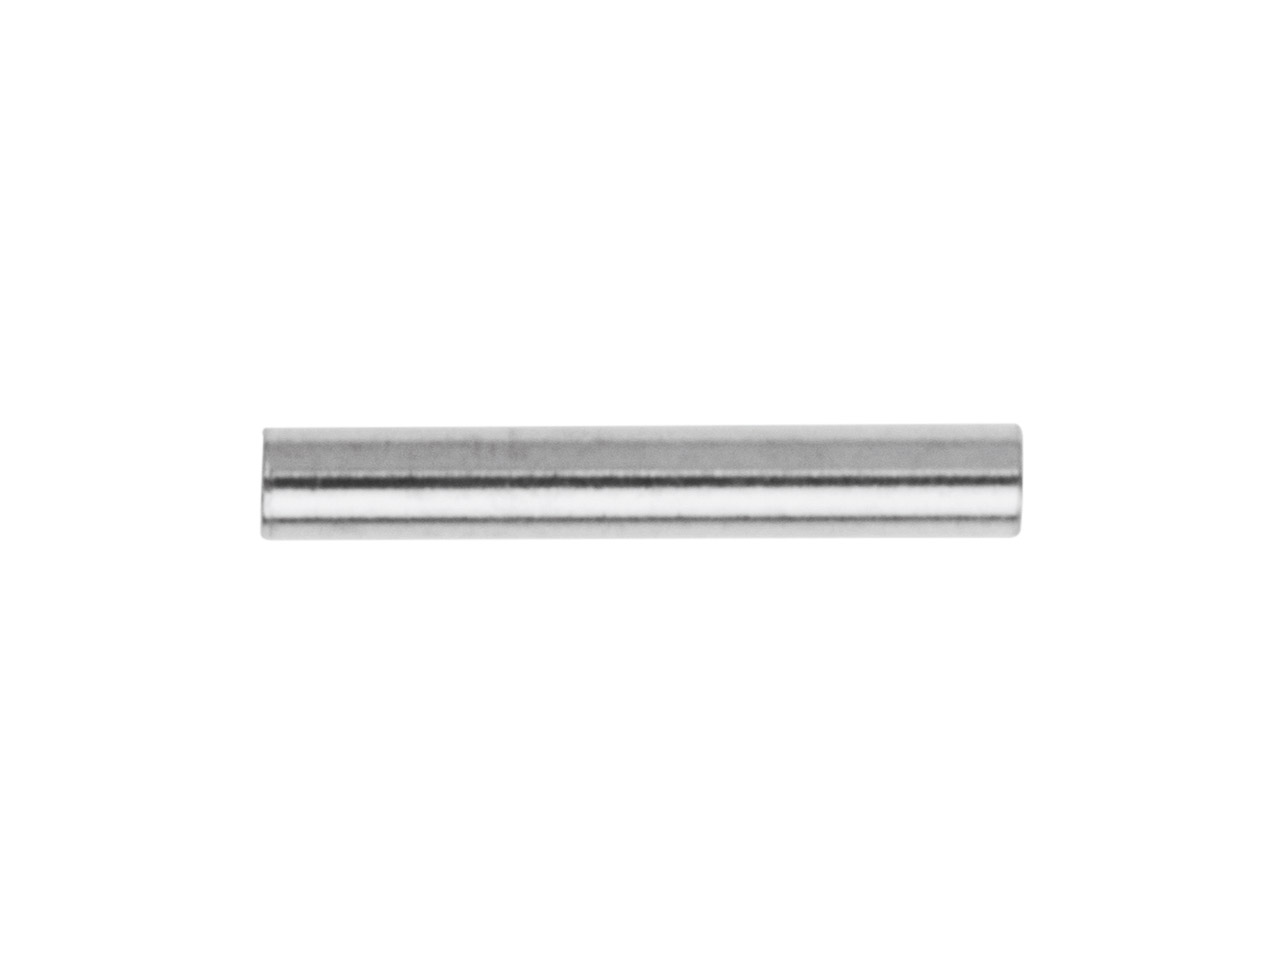 Intercalaire tube 10 x 1,5 mm, Argent 925, sachet de 25